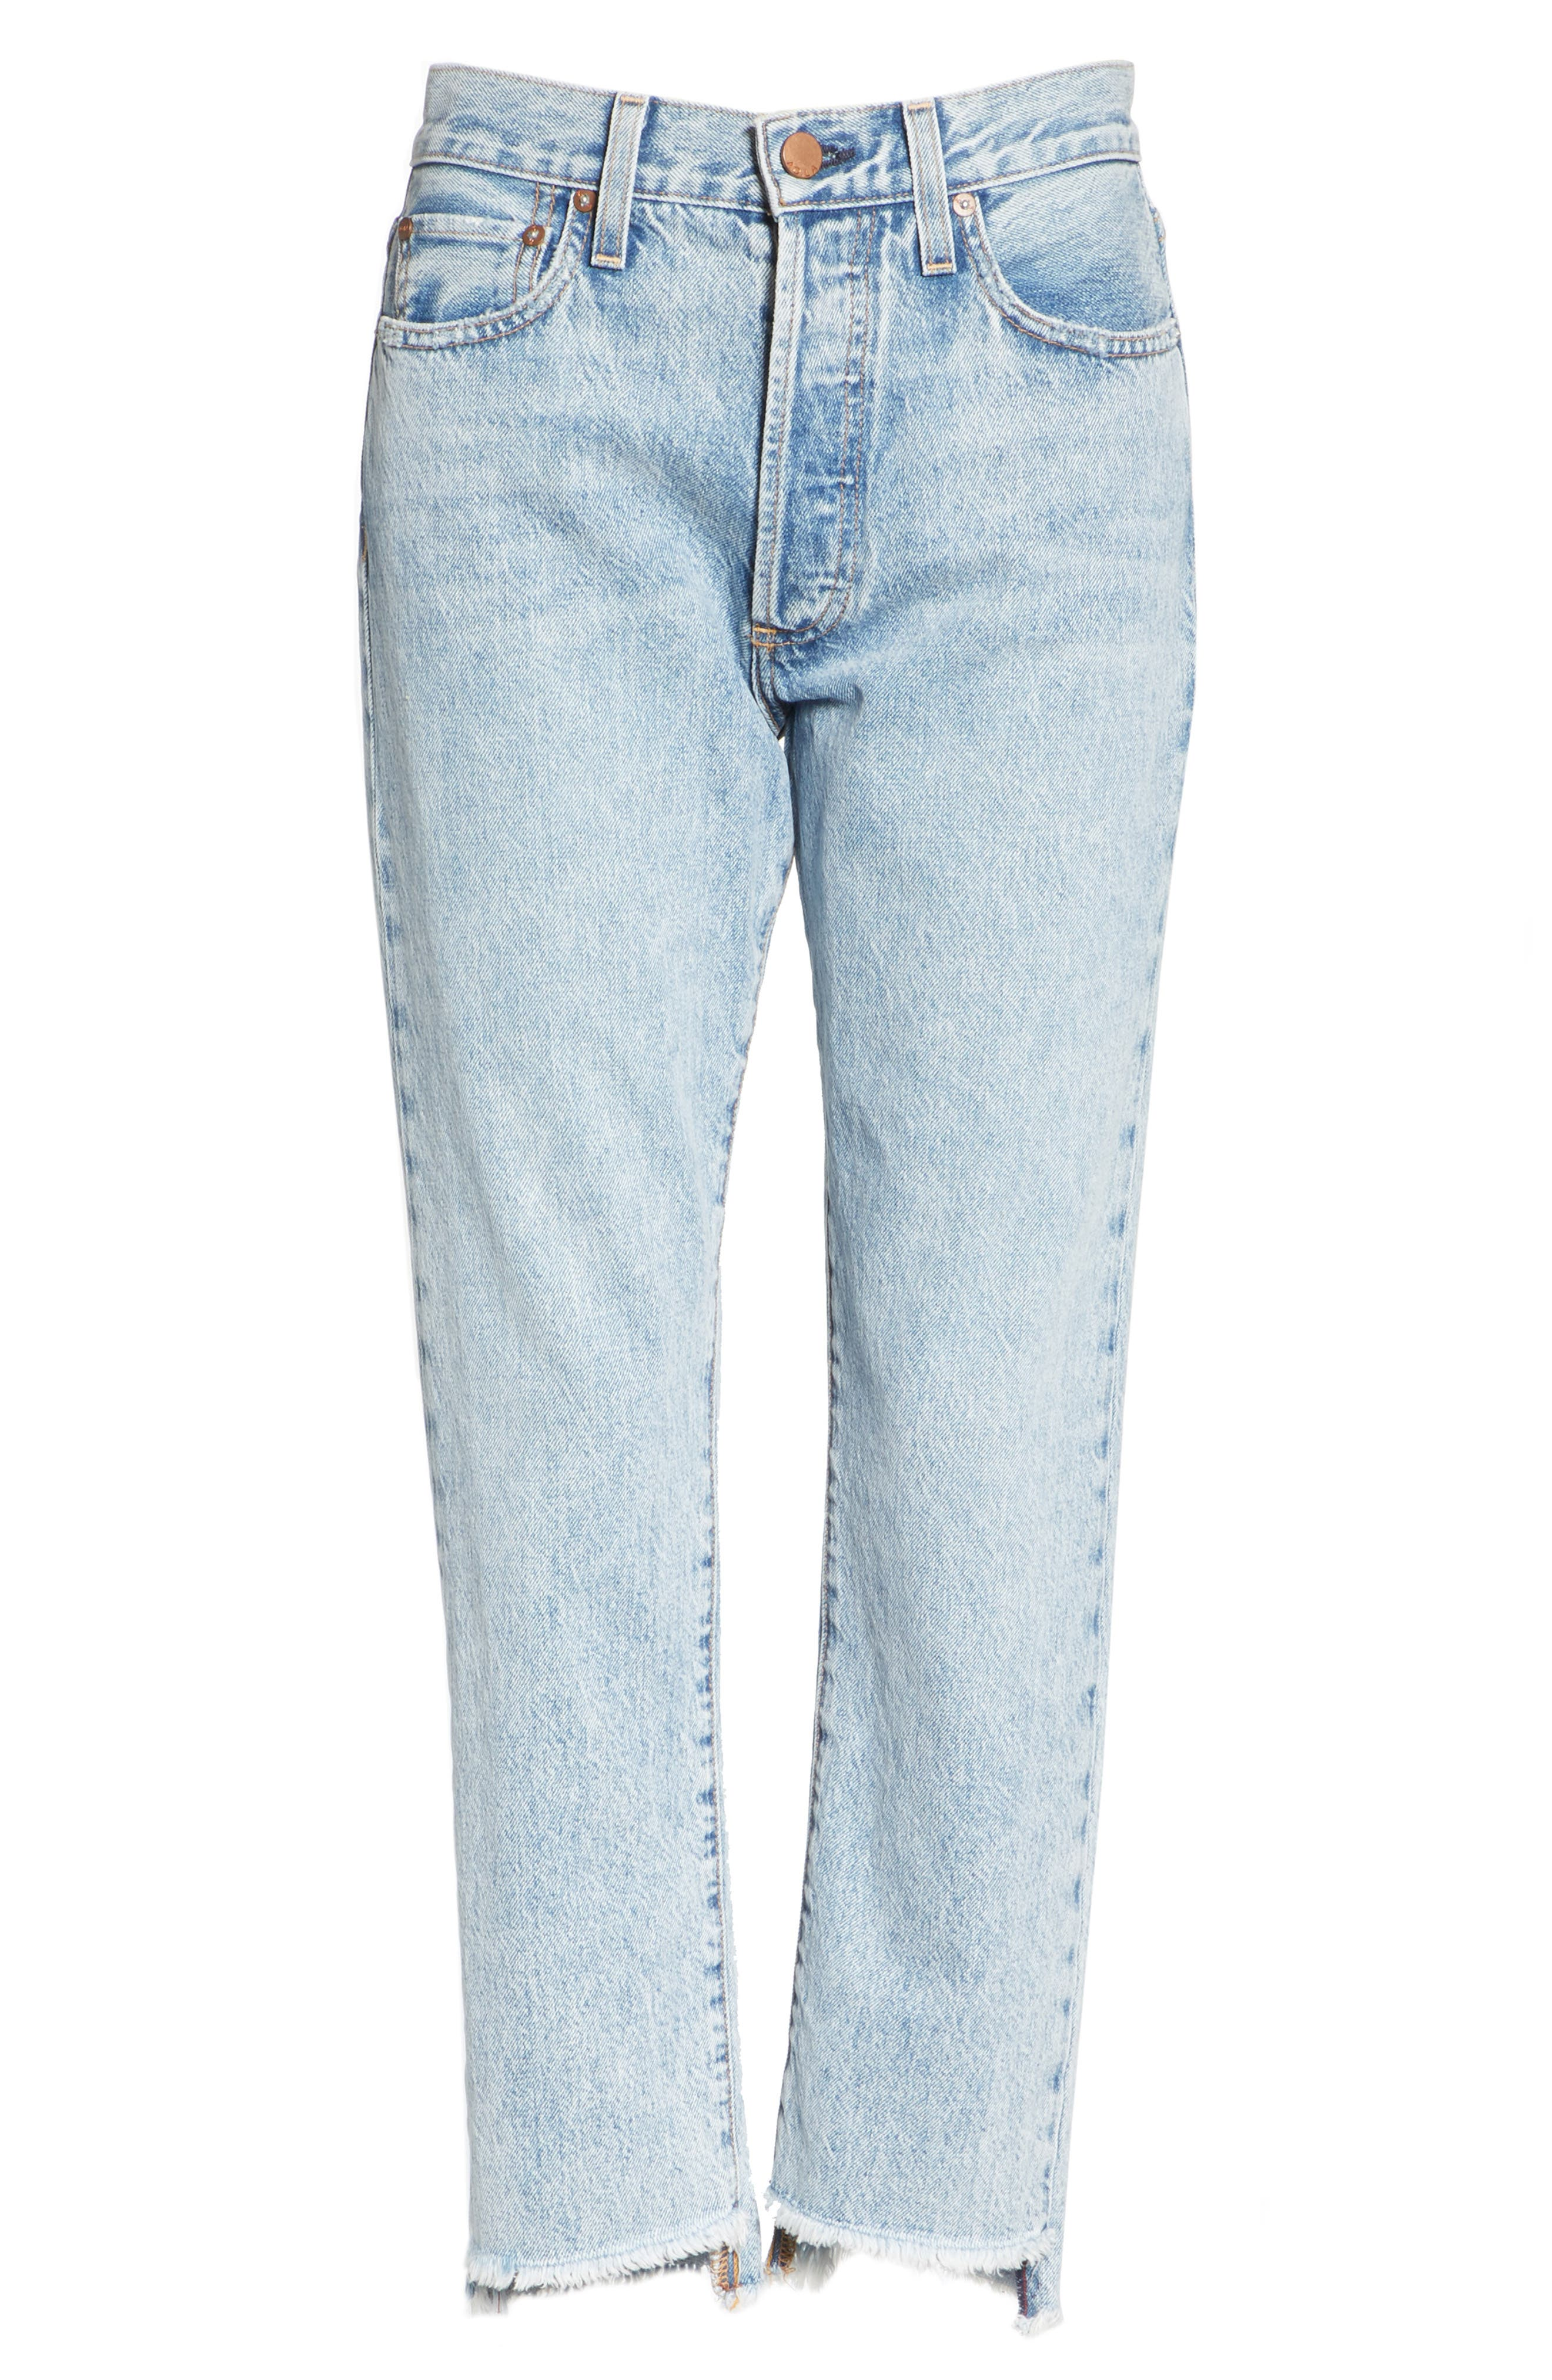 AO.LA Amazing Good Luck Slim Girlfriend Jeans,                             Alternate thumbnail 6, color,                             Out Of Sight/ Gold